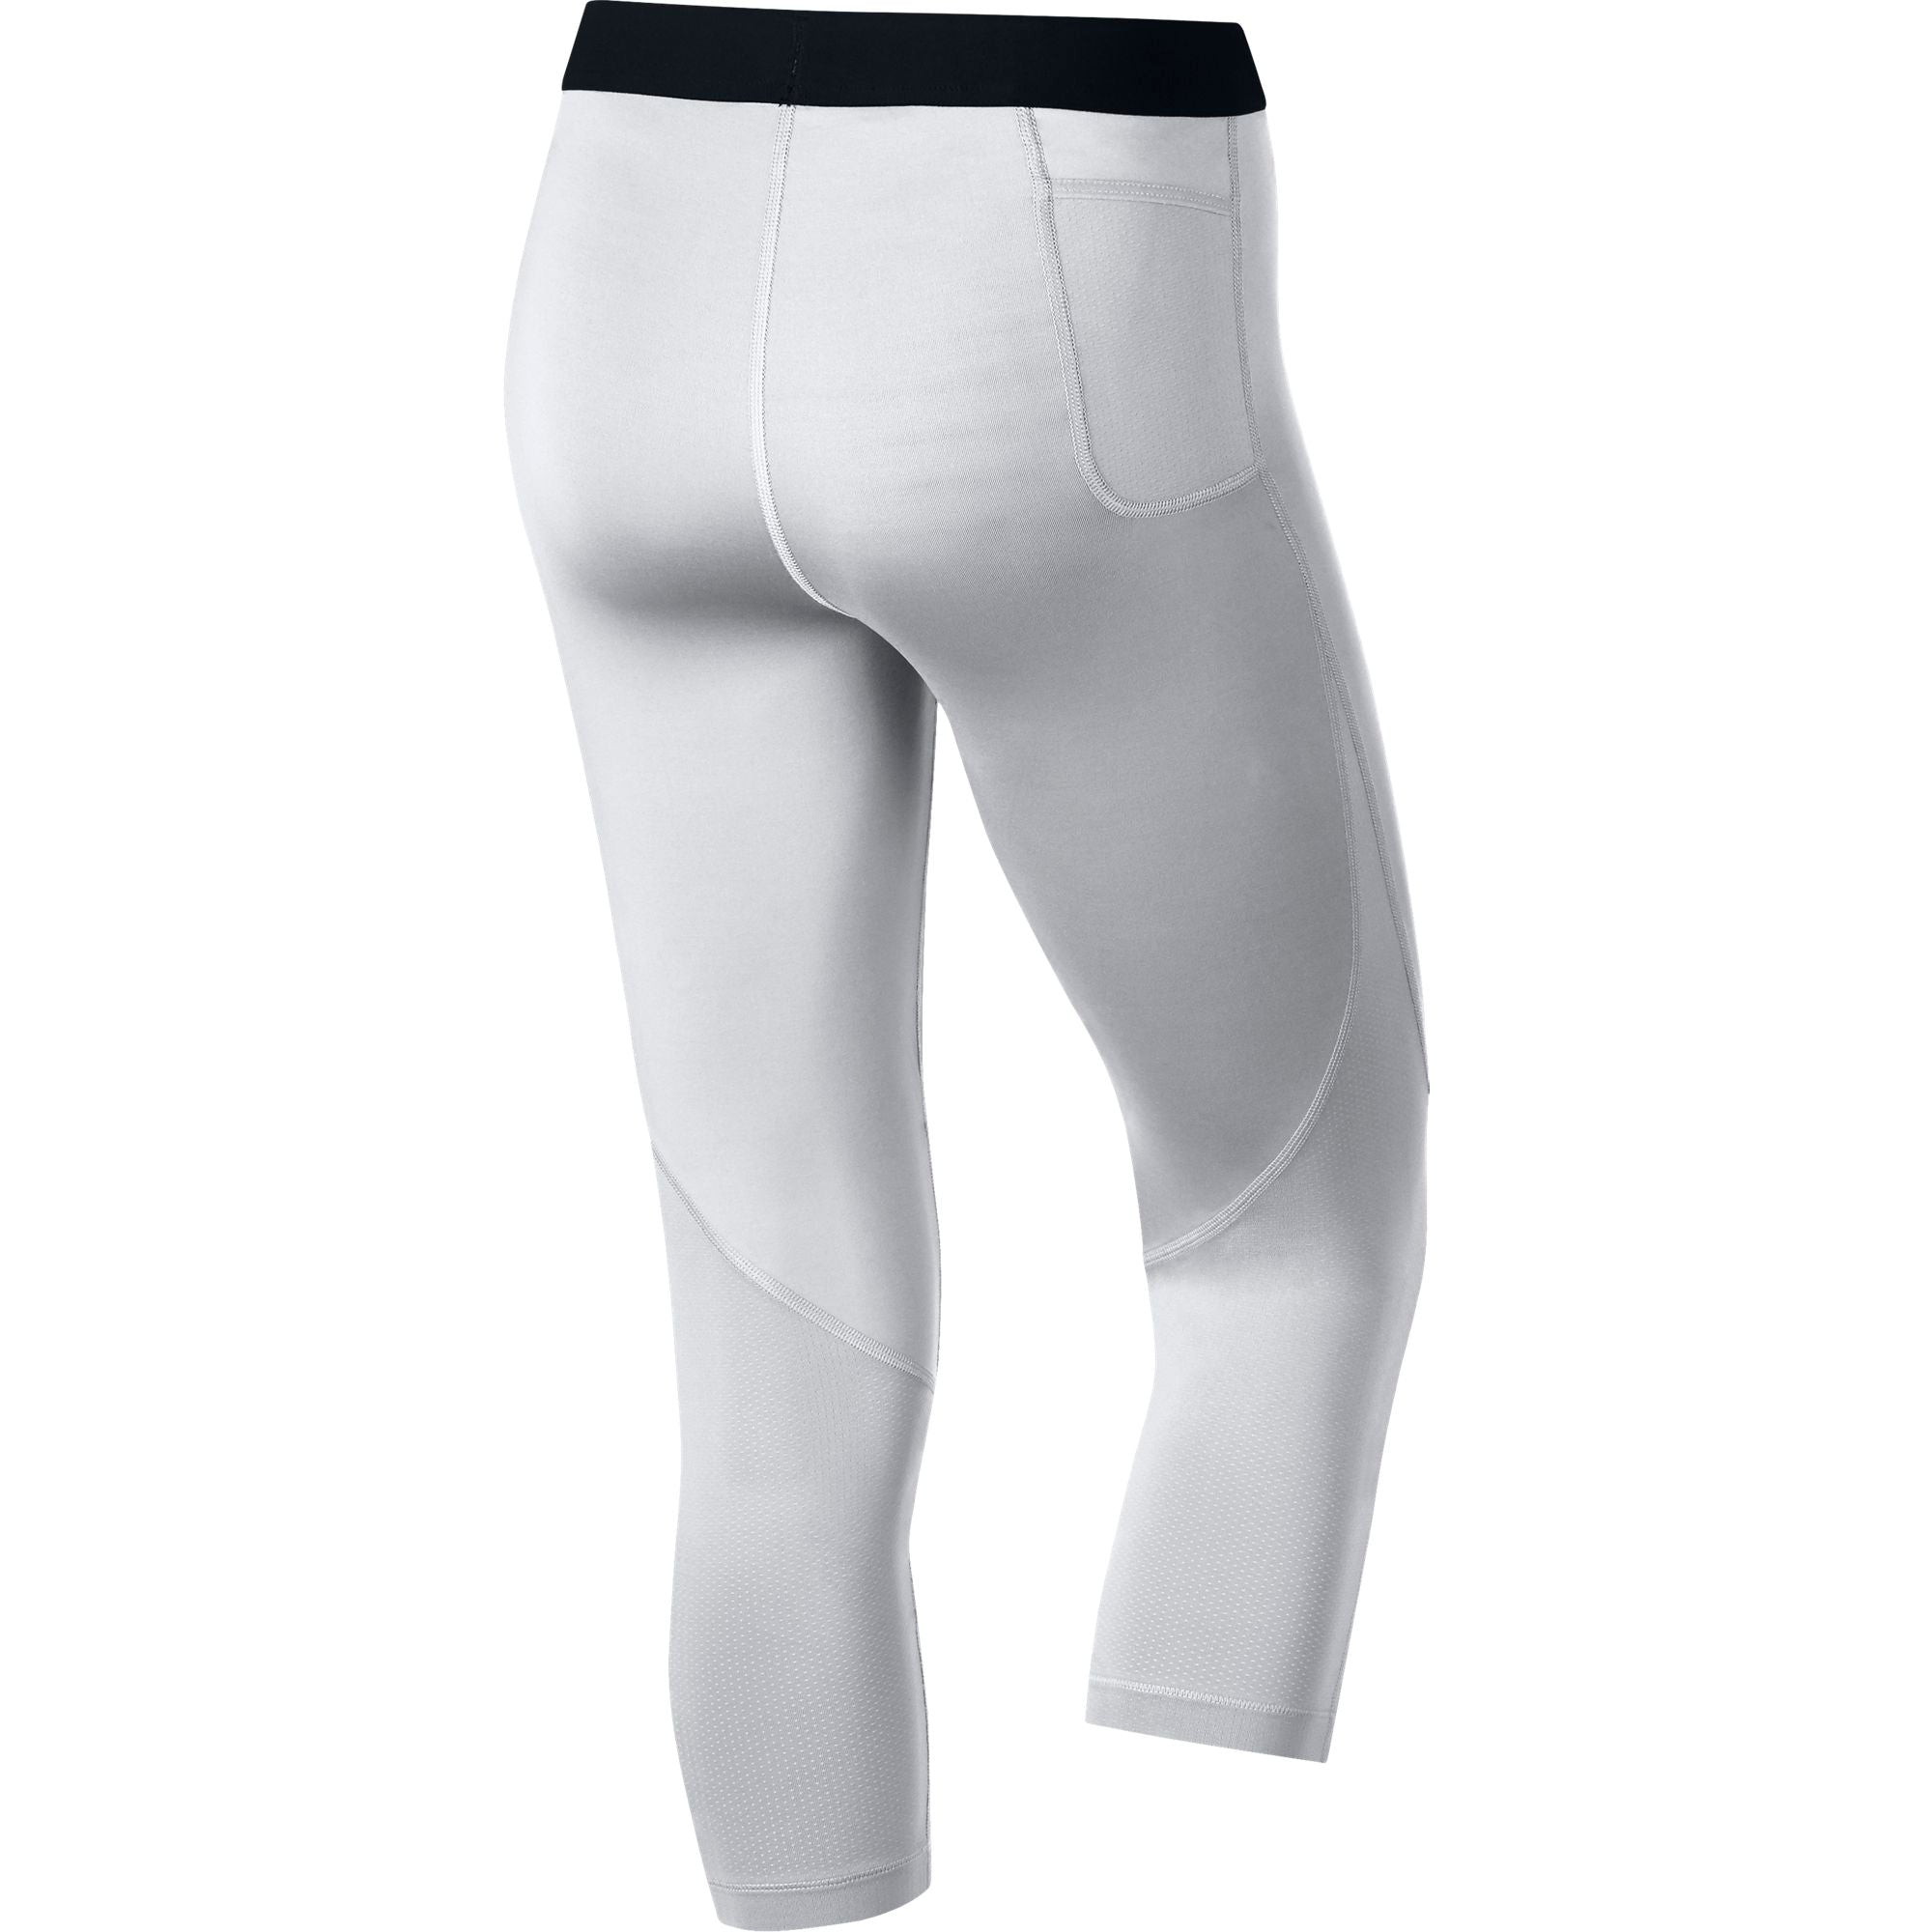 Nike Womens Basketball Pro Tights - White/Black